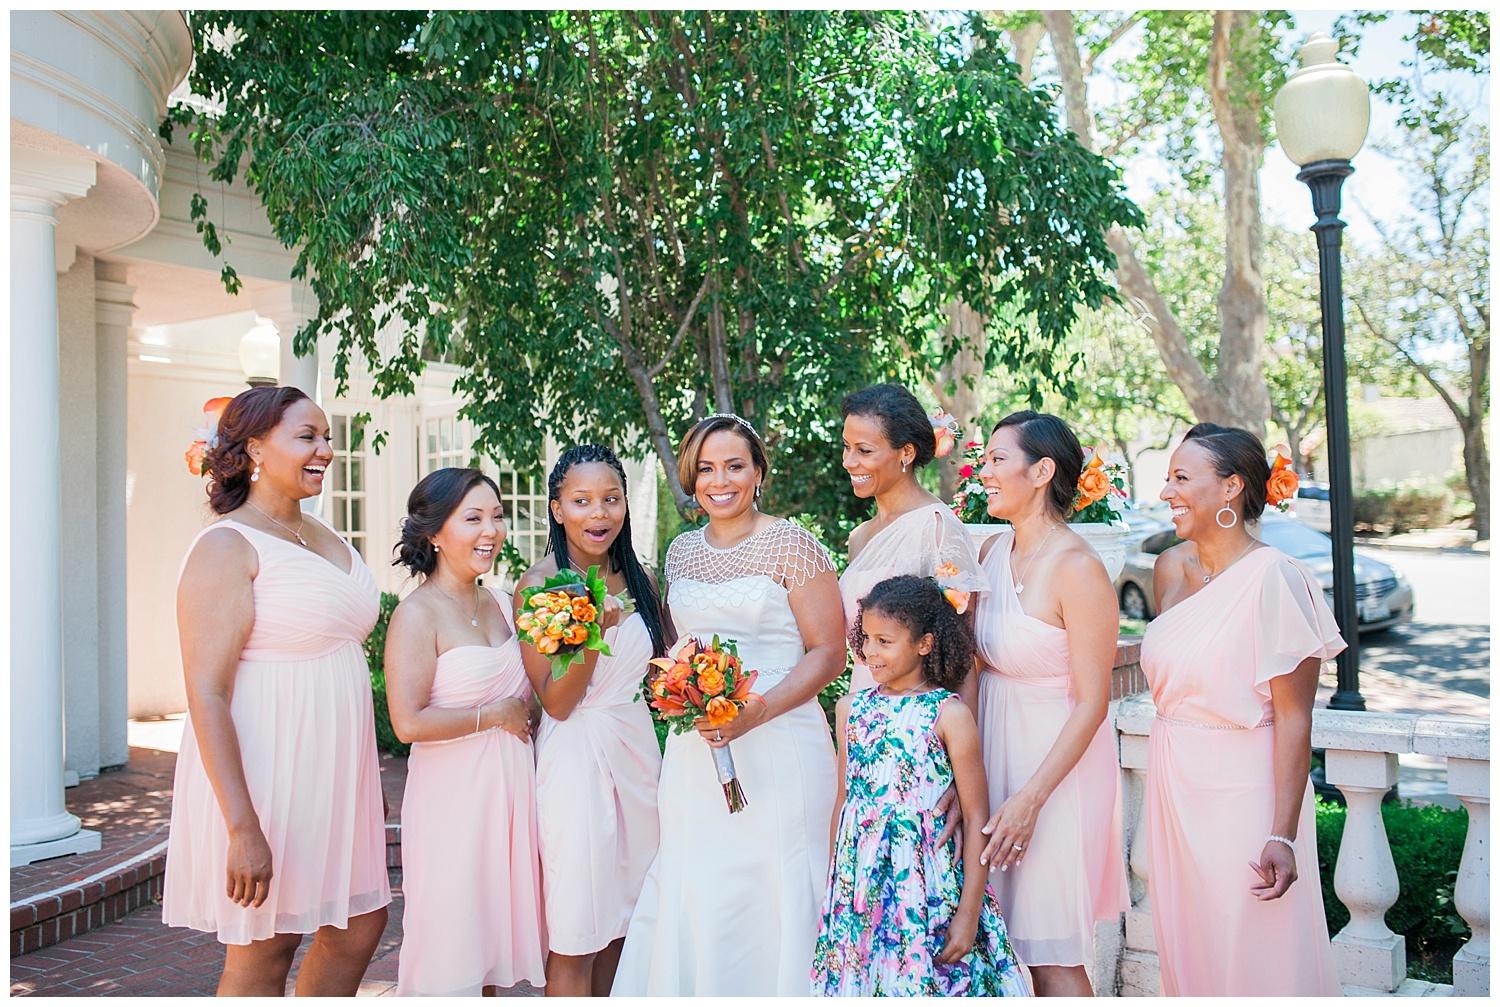 SACRAMENTO_WEDDING_VIZCAYA_PHOTOGRAPHY_SUNFLOWERS_NICOLEQUIROZ_13.jpg